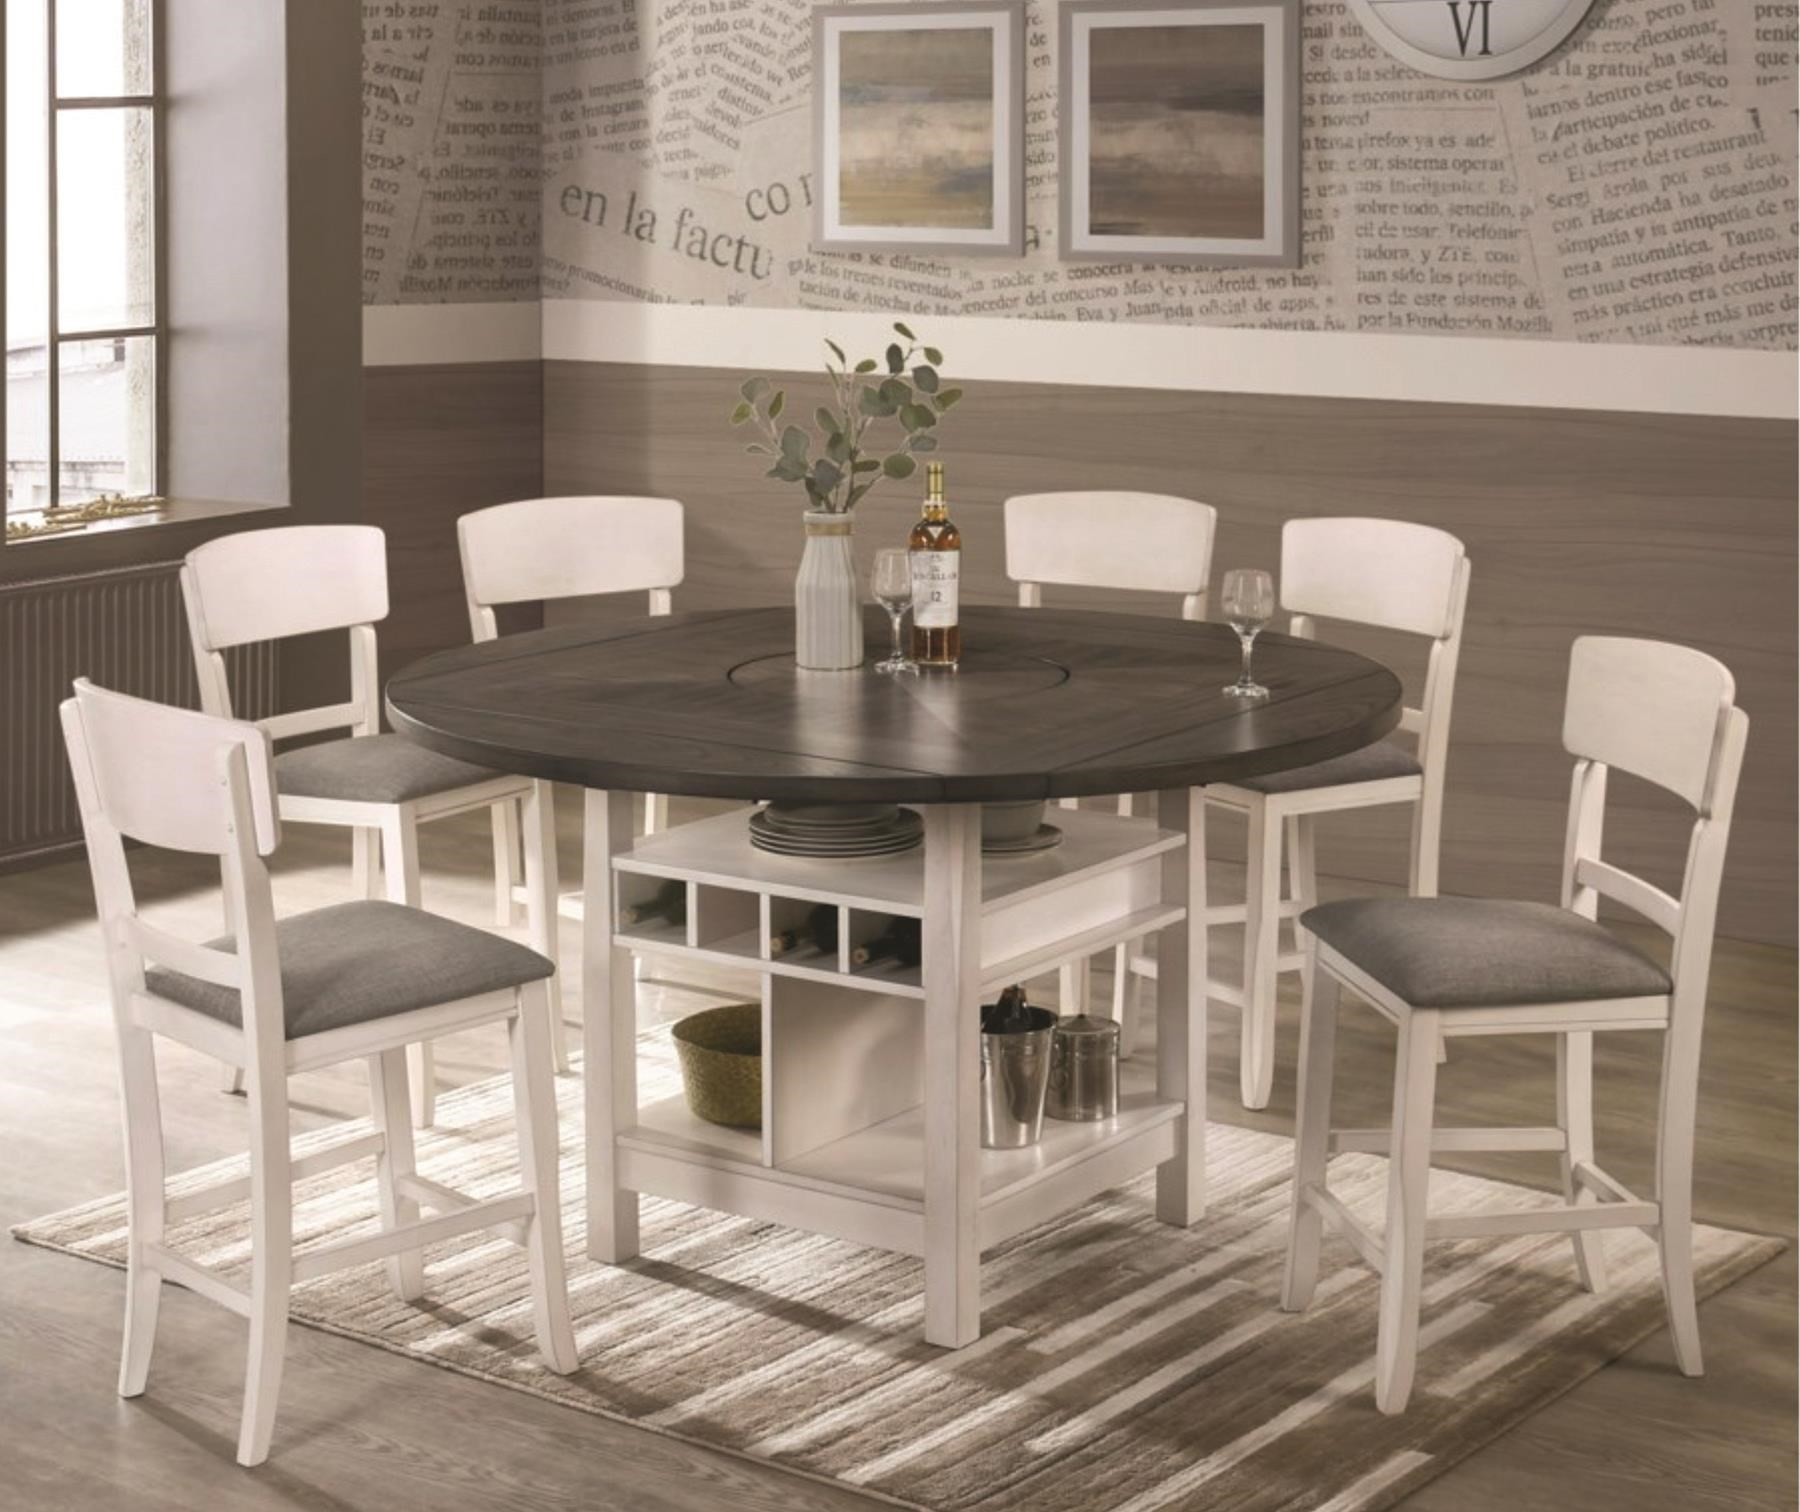 Conner 5 Piece Counter Height Dining Set by Crown Mark at Darvin Furniture